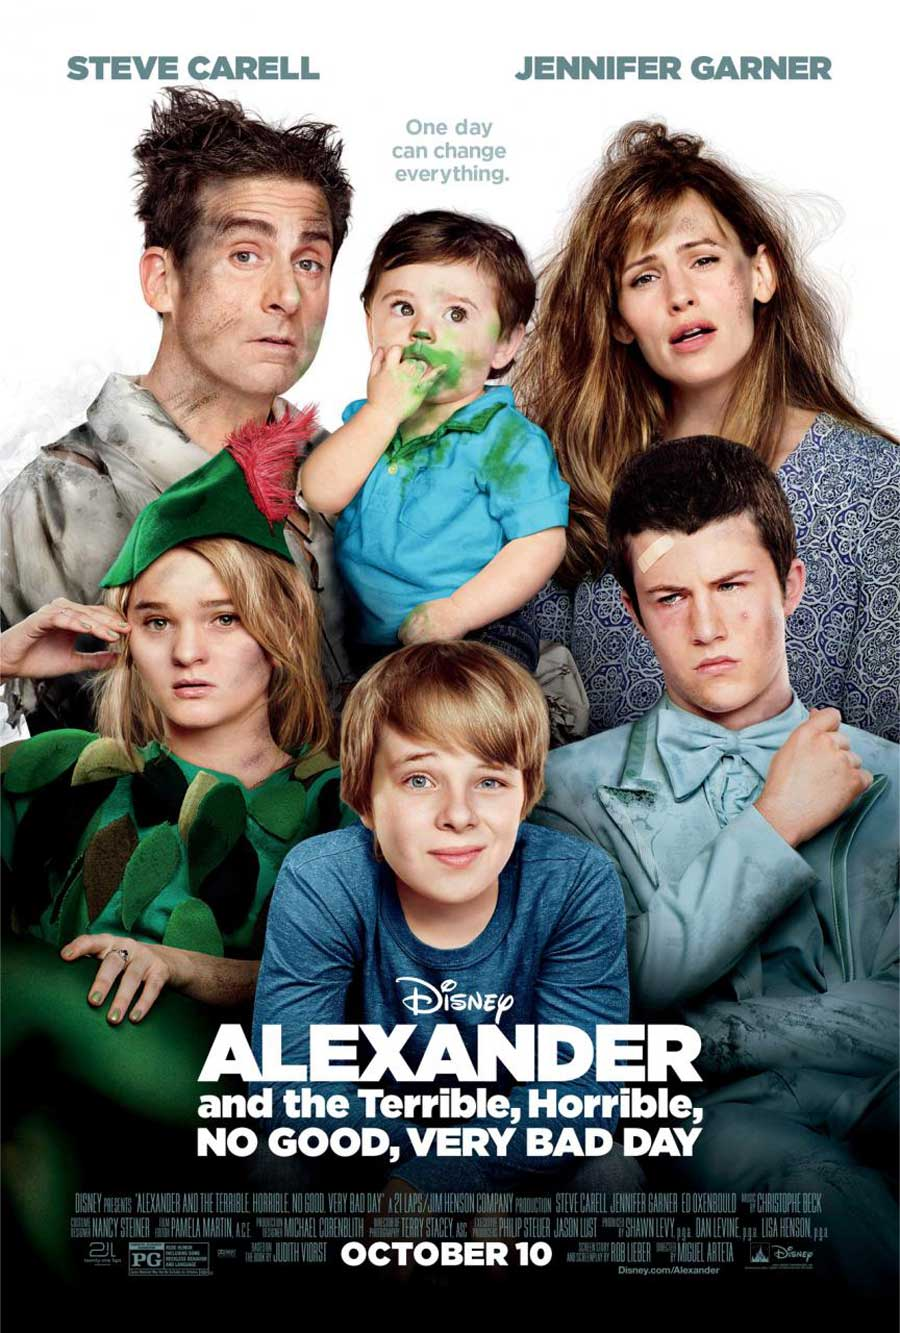 Poster for Alexander and the Terrible, Horrible, No Good, Very Bad Day